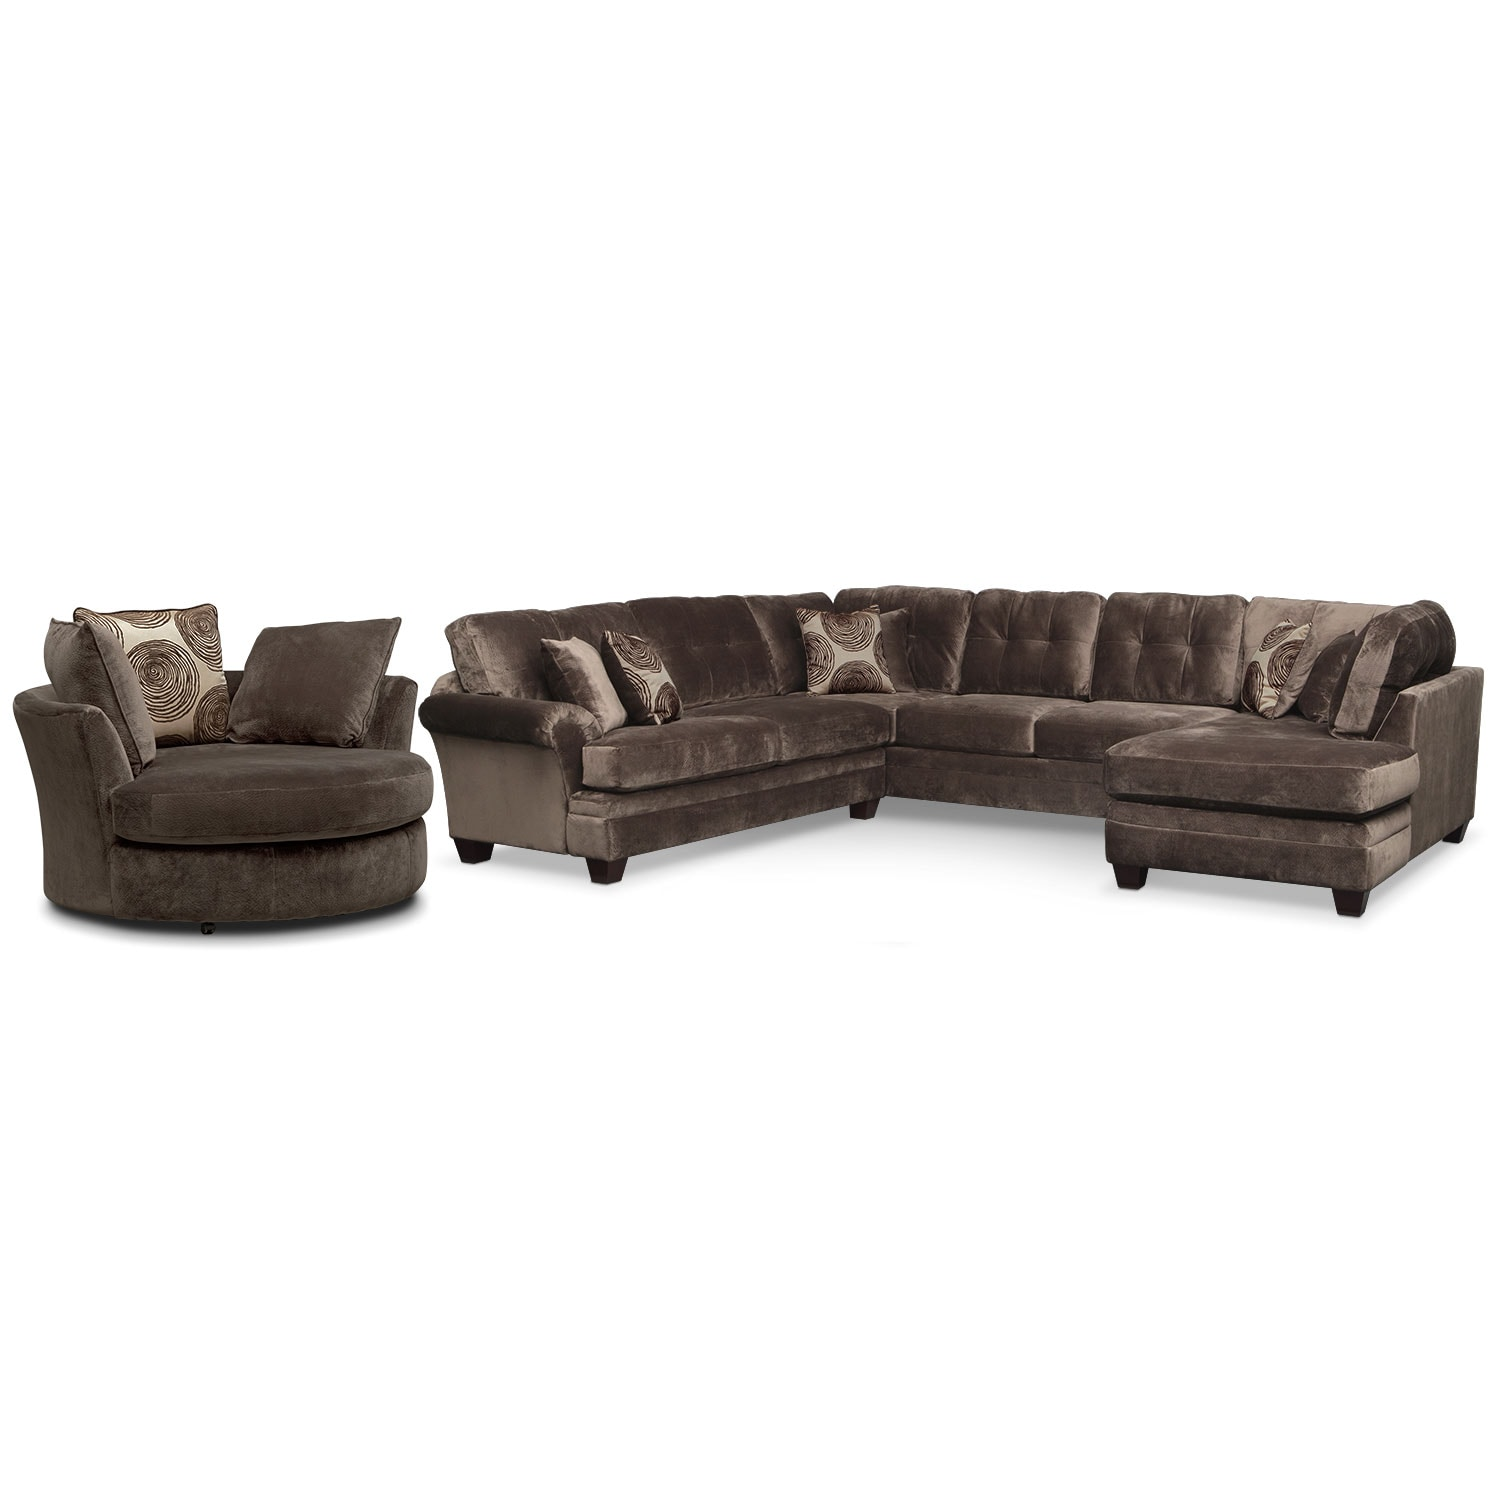 Cordelle 3 Piece Sectional And Swivel Chair Set